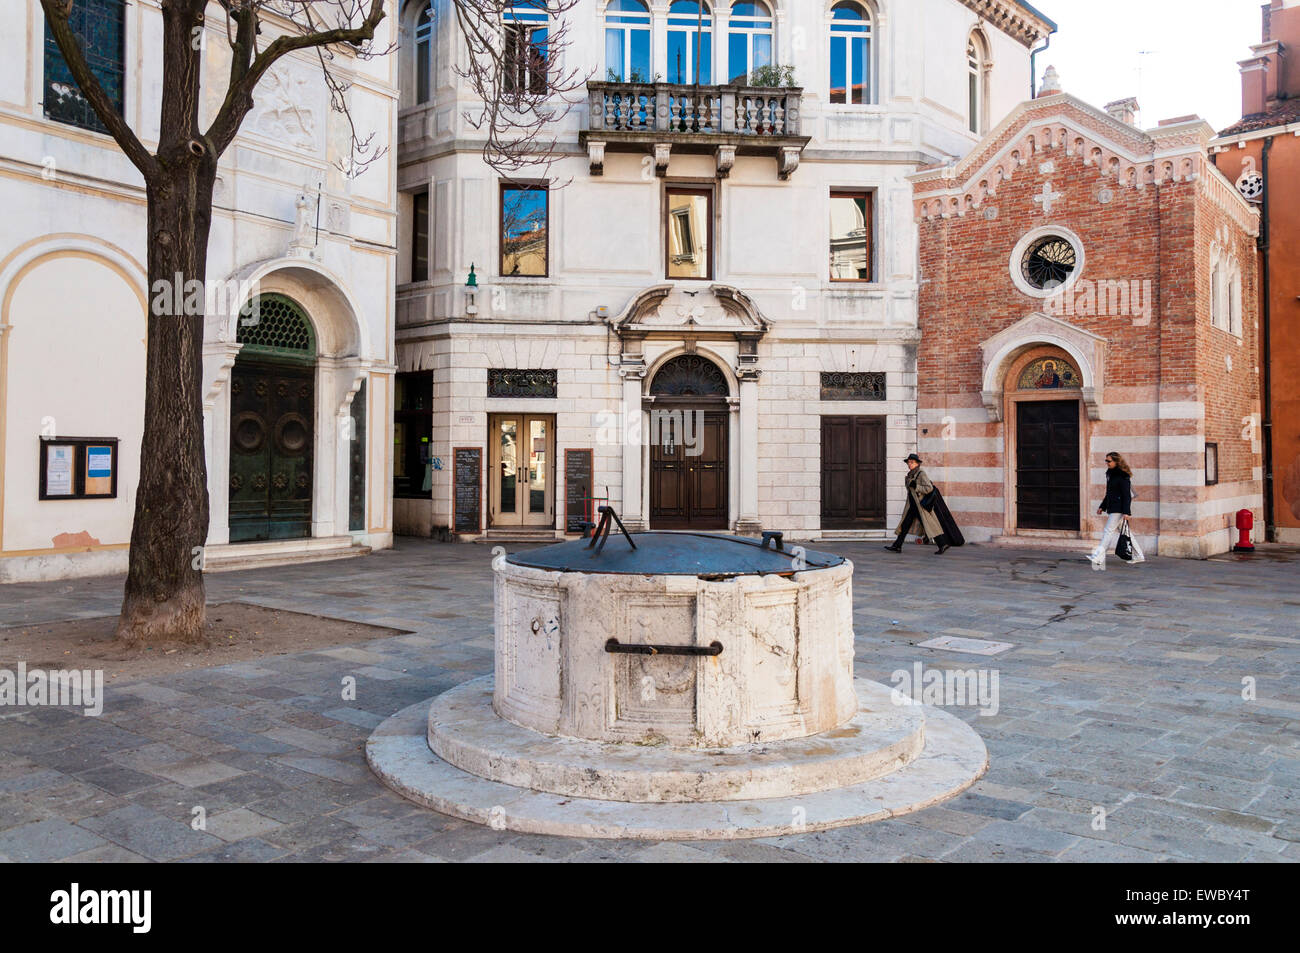 Campo San Vio old well in the square in Venice Italy - Stock Image